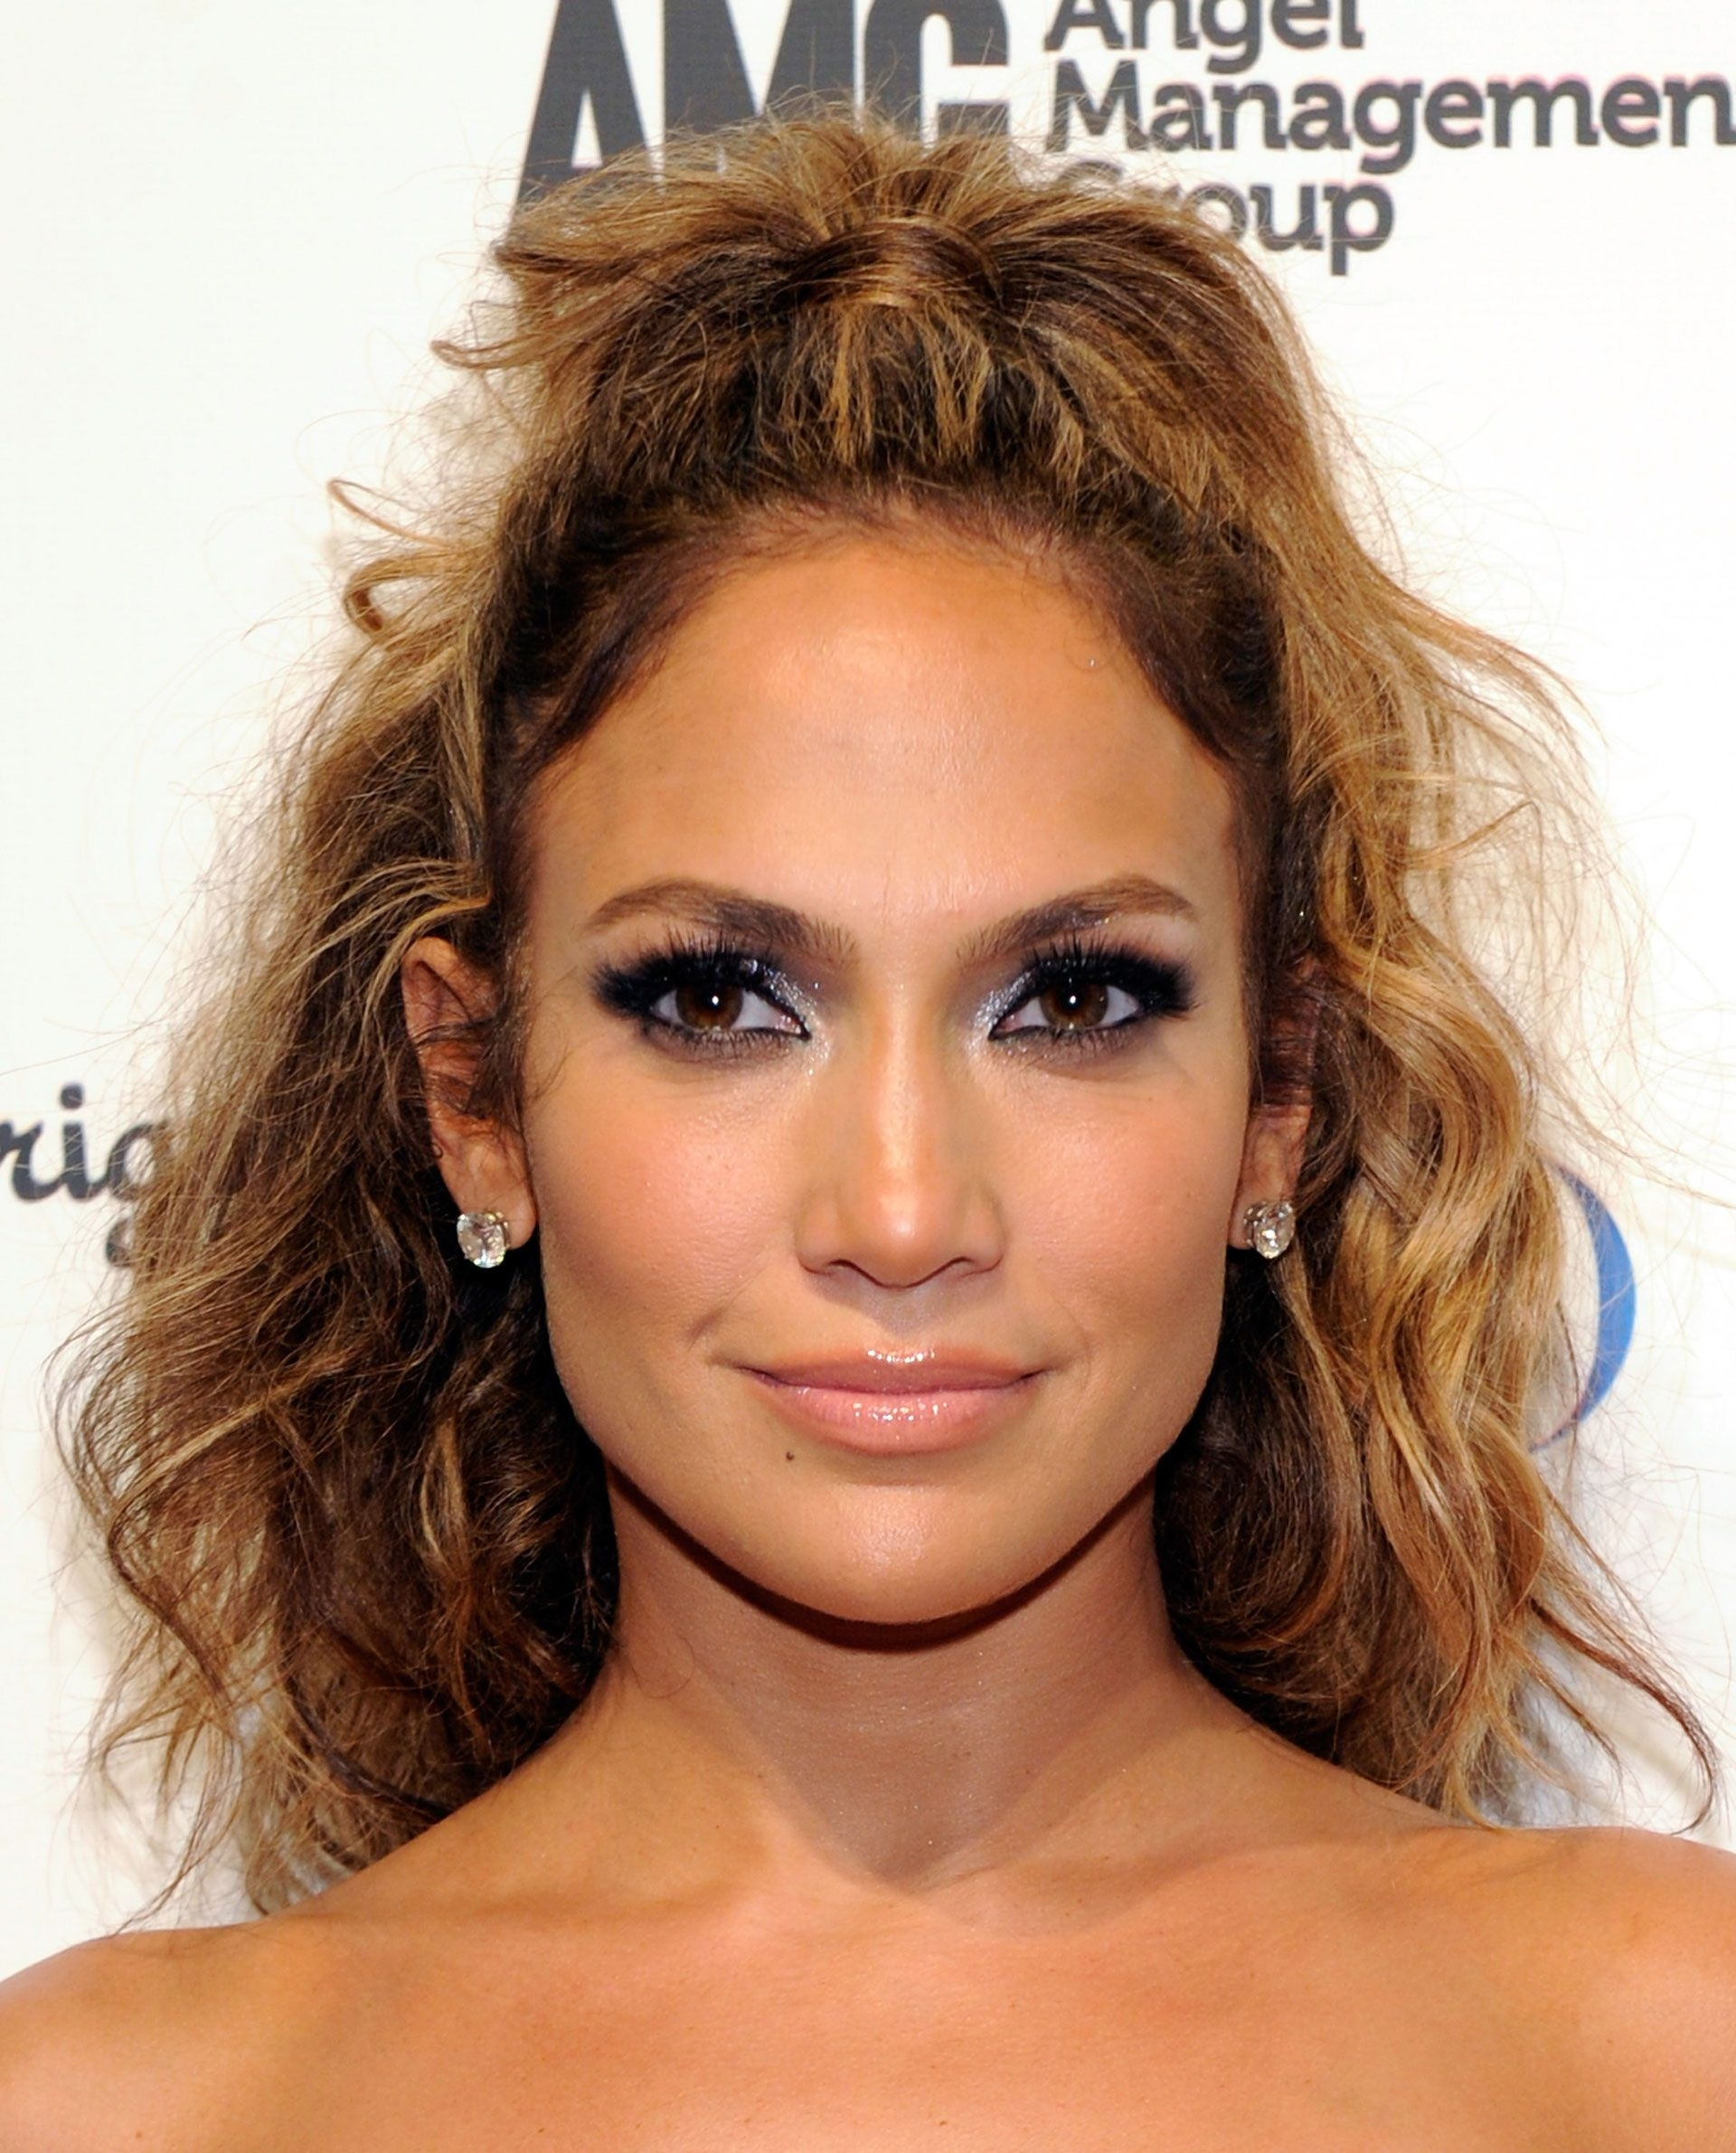 42 Easy Curly Hairstyles - Short, Medium, And Long Haircuts For throughout Curly Hairstyles For Going Out